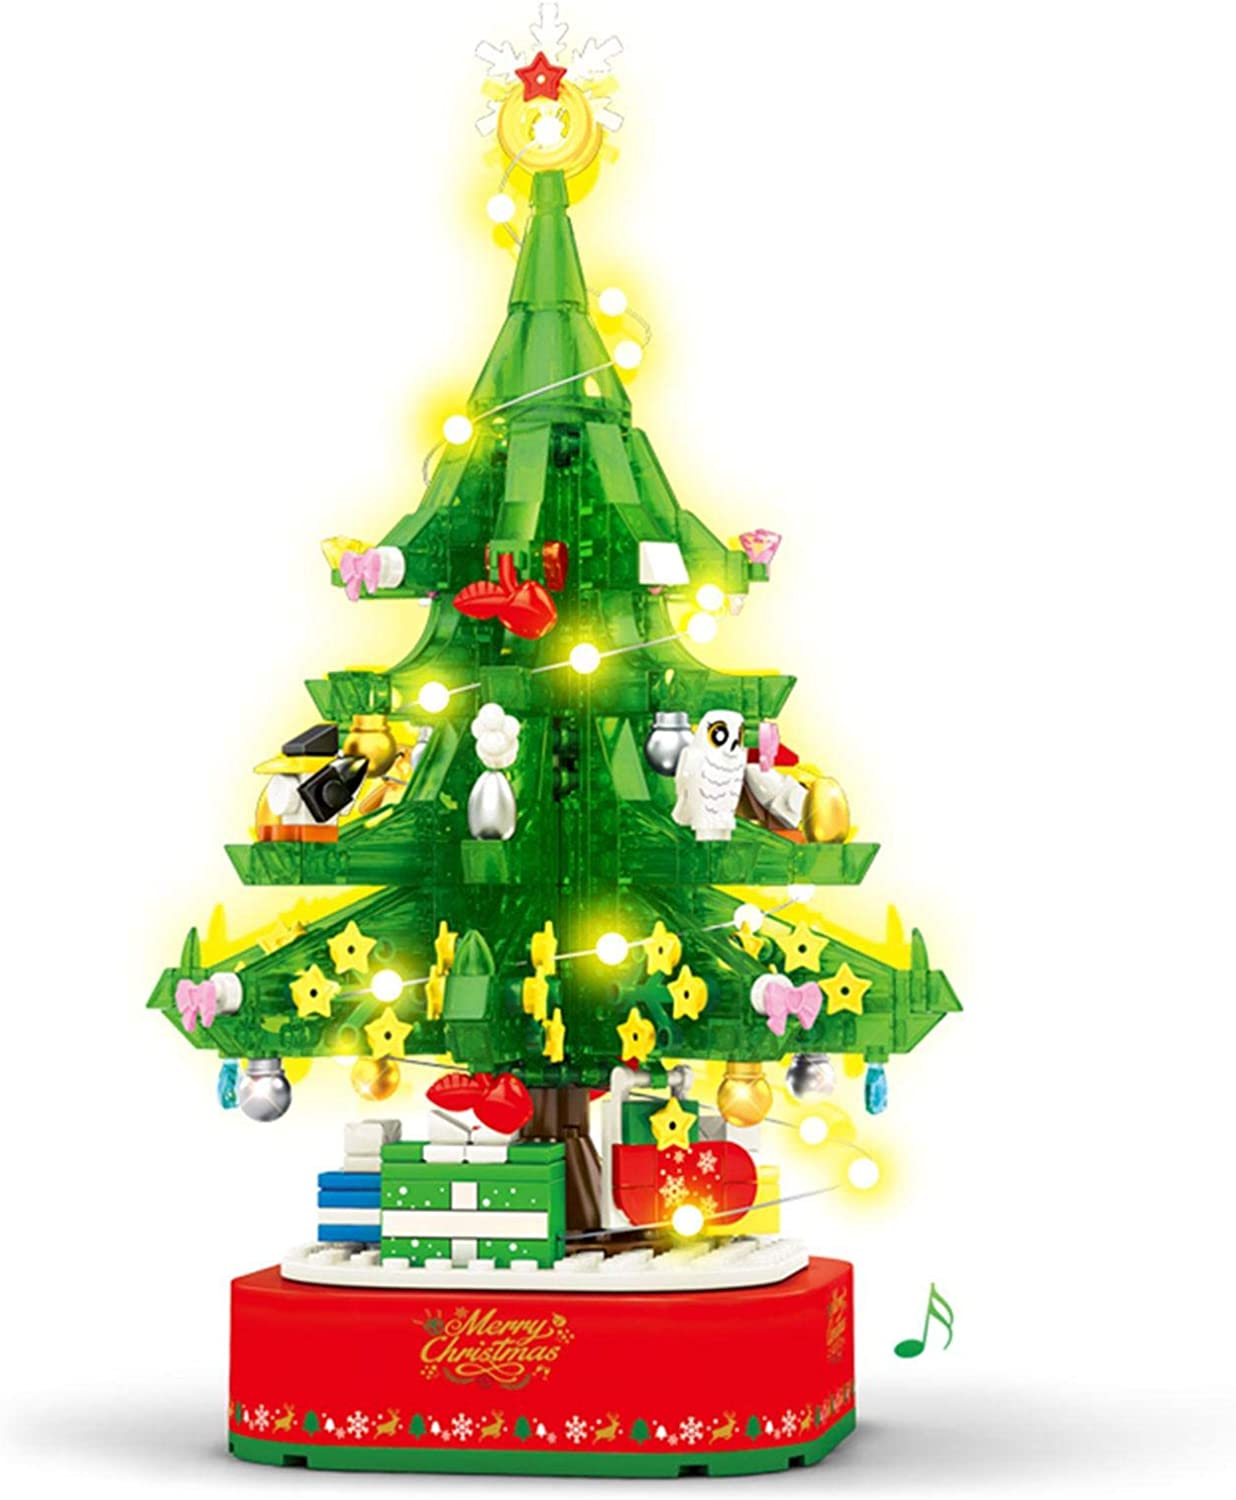 Christmas Tree Rotating Music Box, DIY Creative Miniature Ornaments, Christmas Tree With Pendant Ornaments Music Box ,Assembled Building Block Educational Toy Christmas Tree Table Desk Decoration